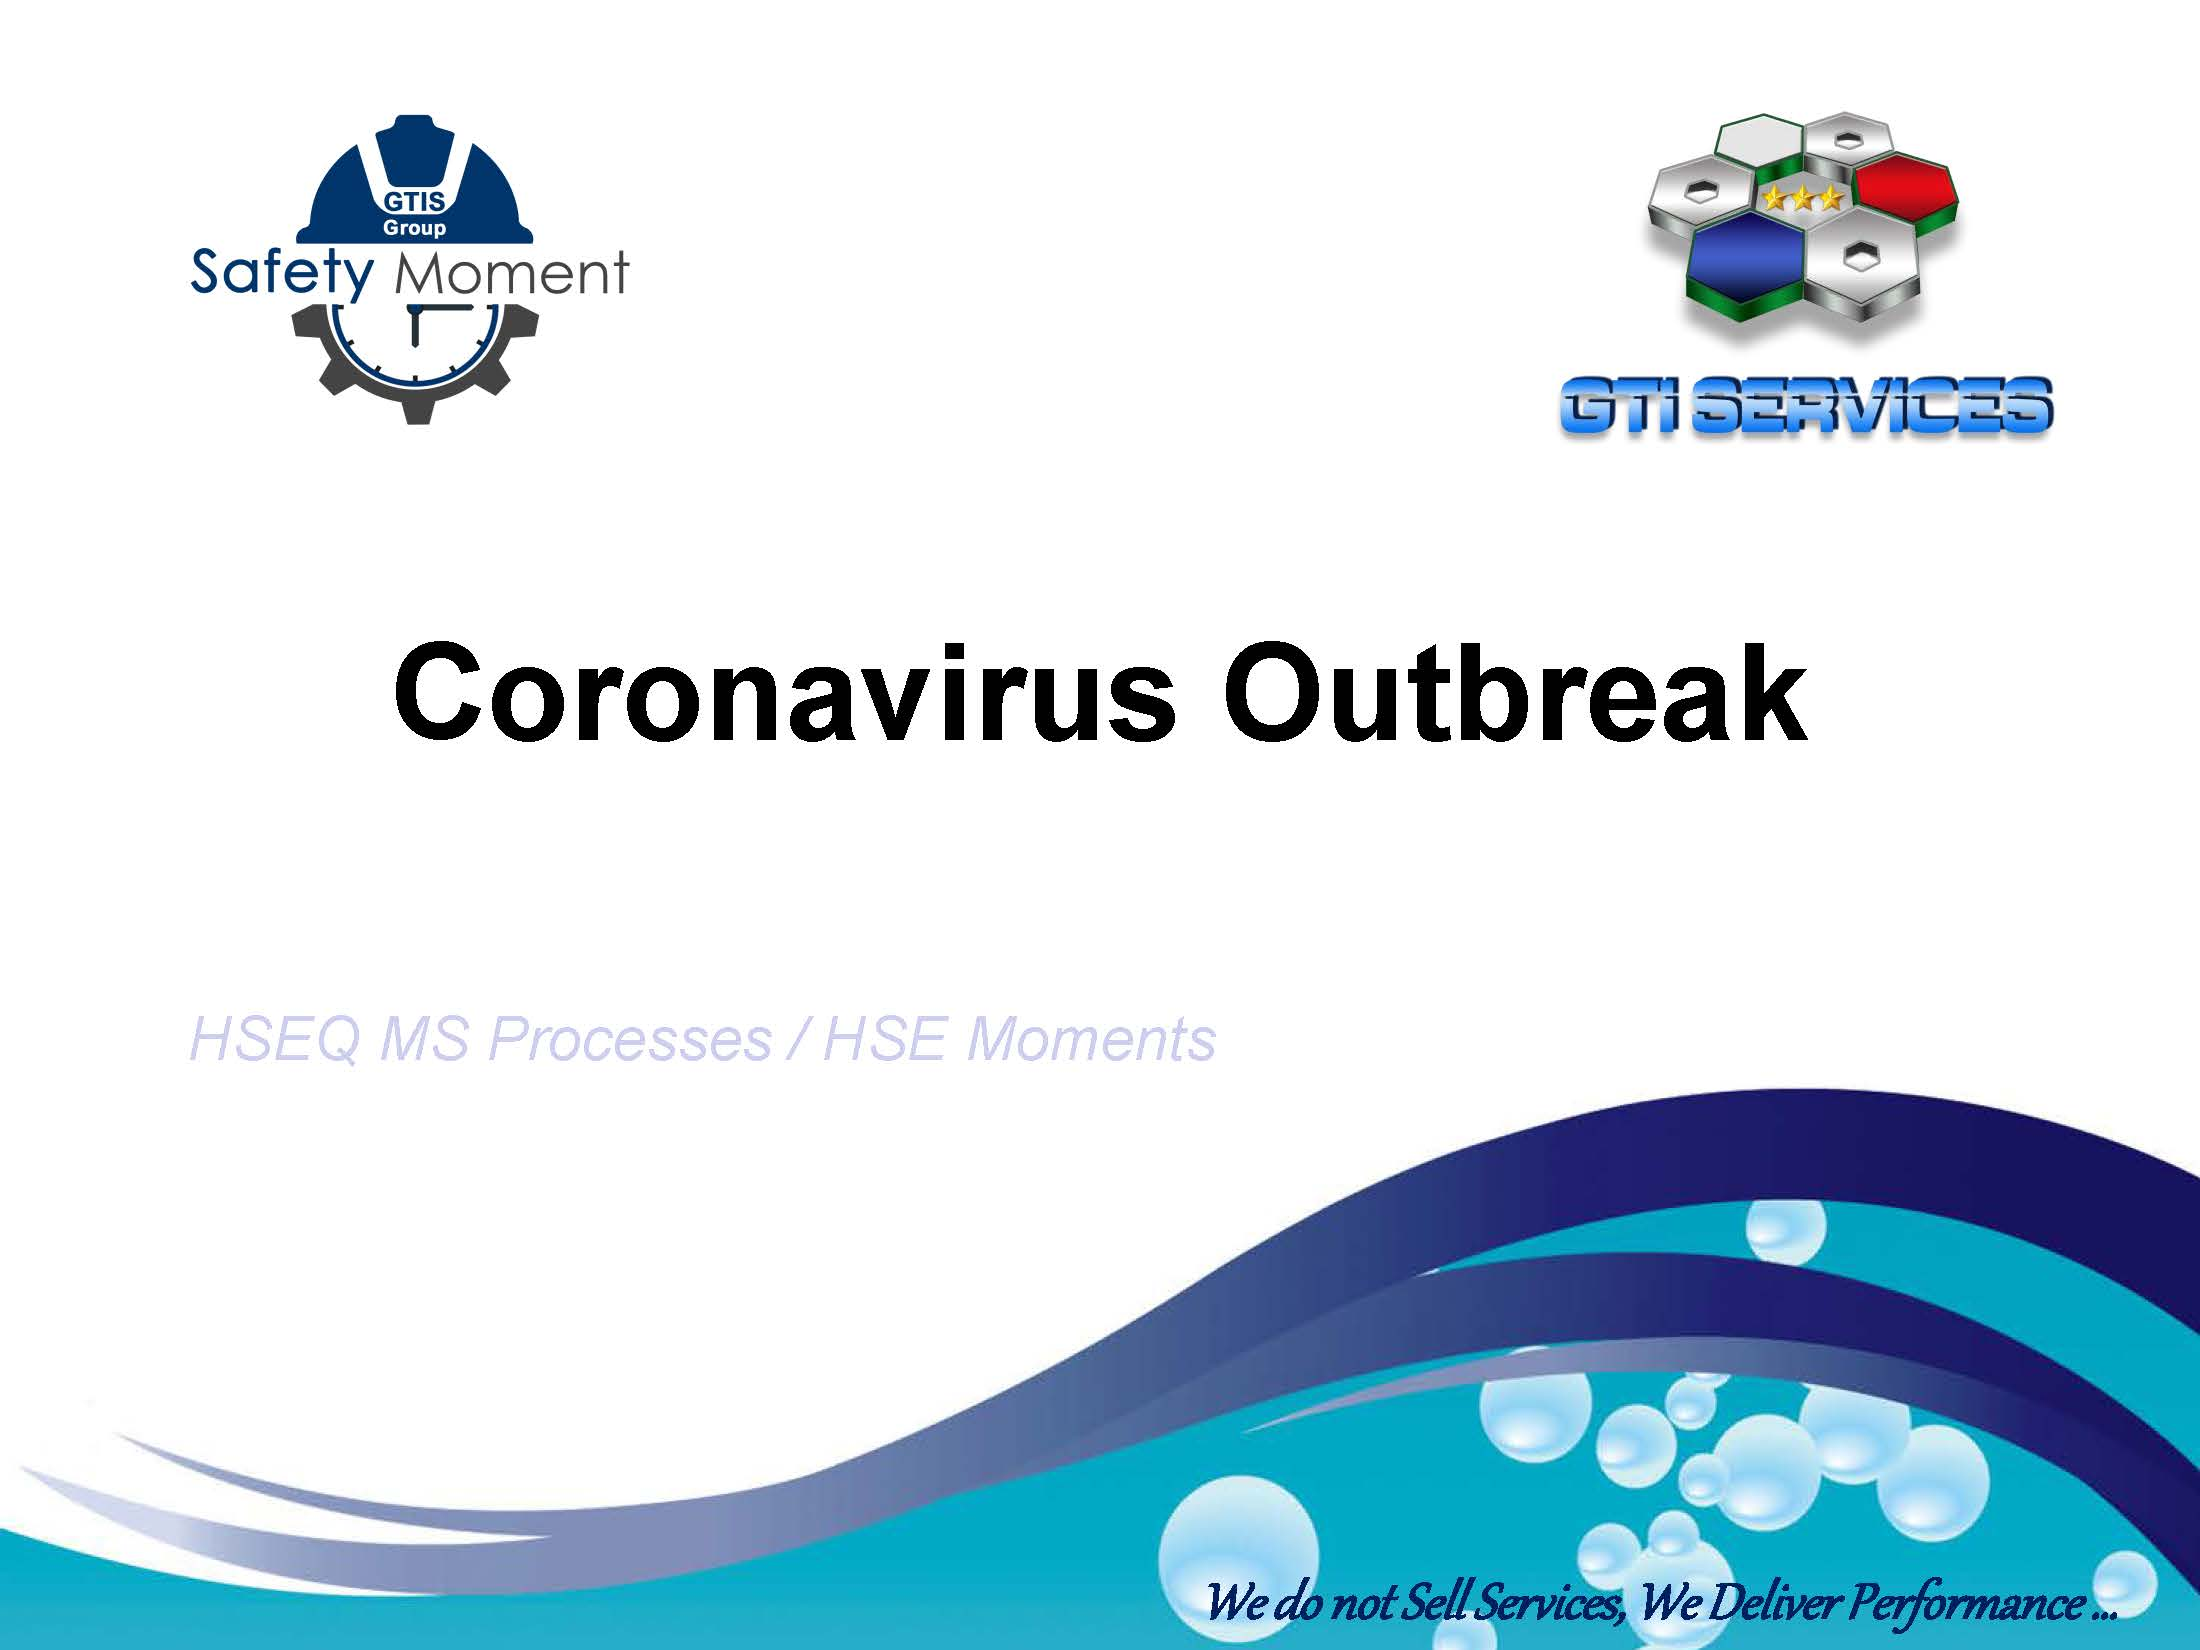 20200127 - Safety Moment - Coronavirus Outbreak_Page_1